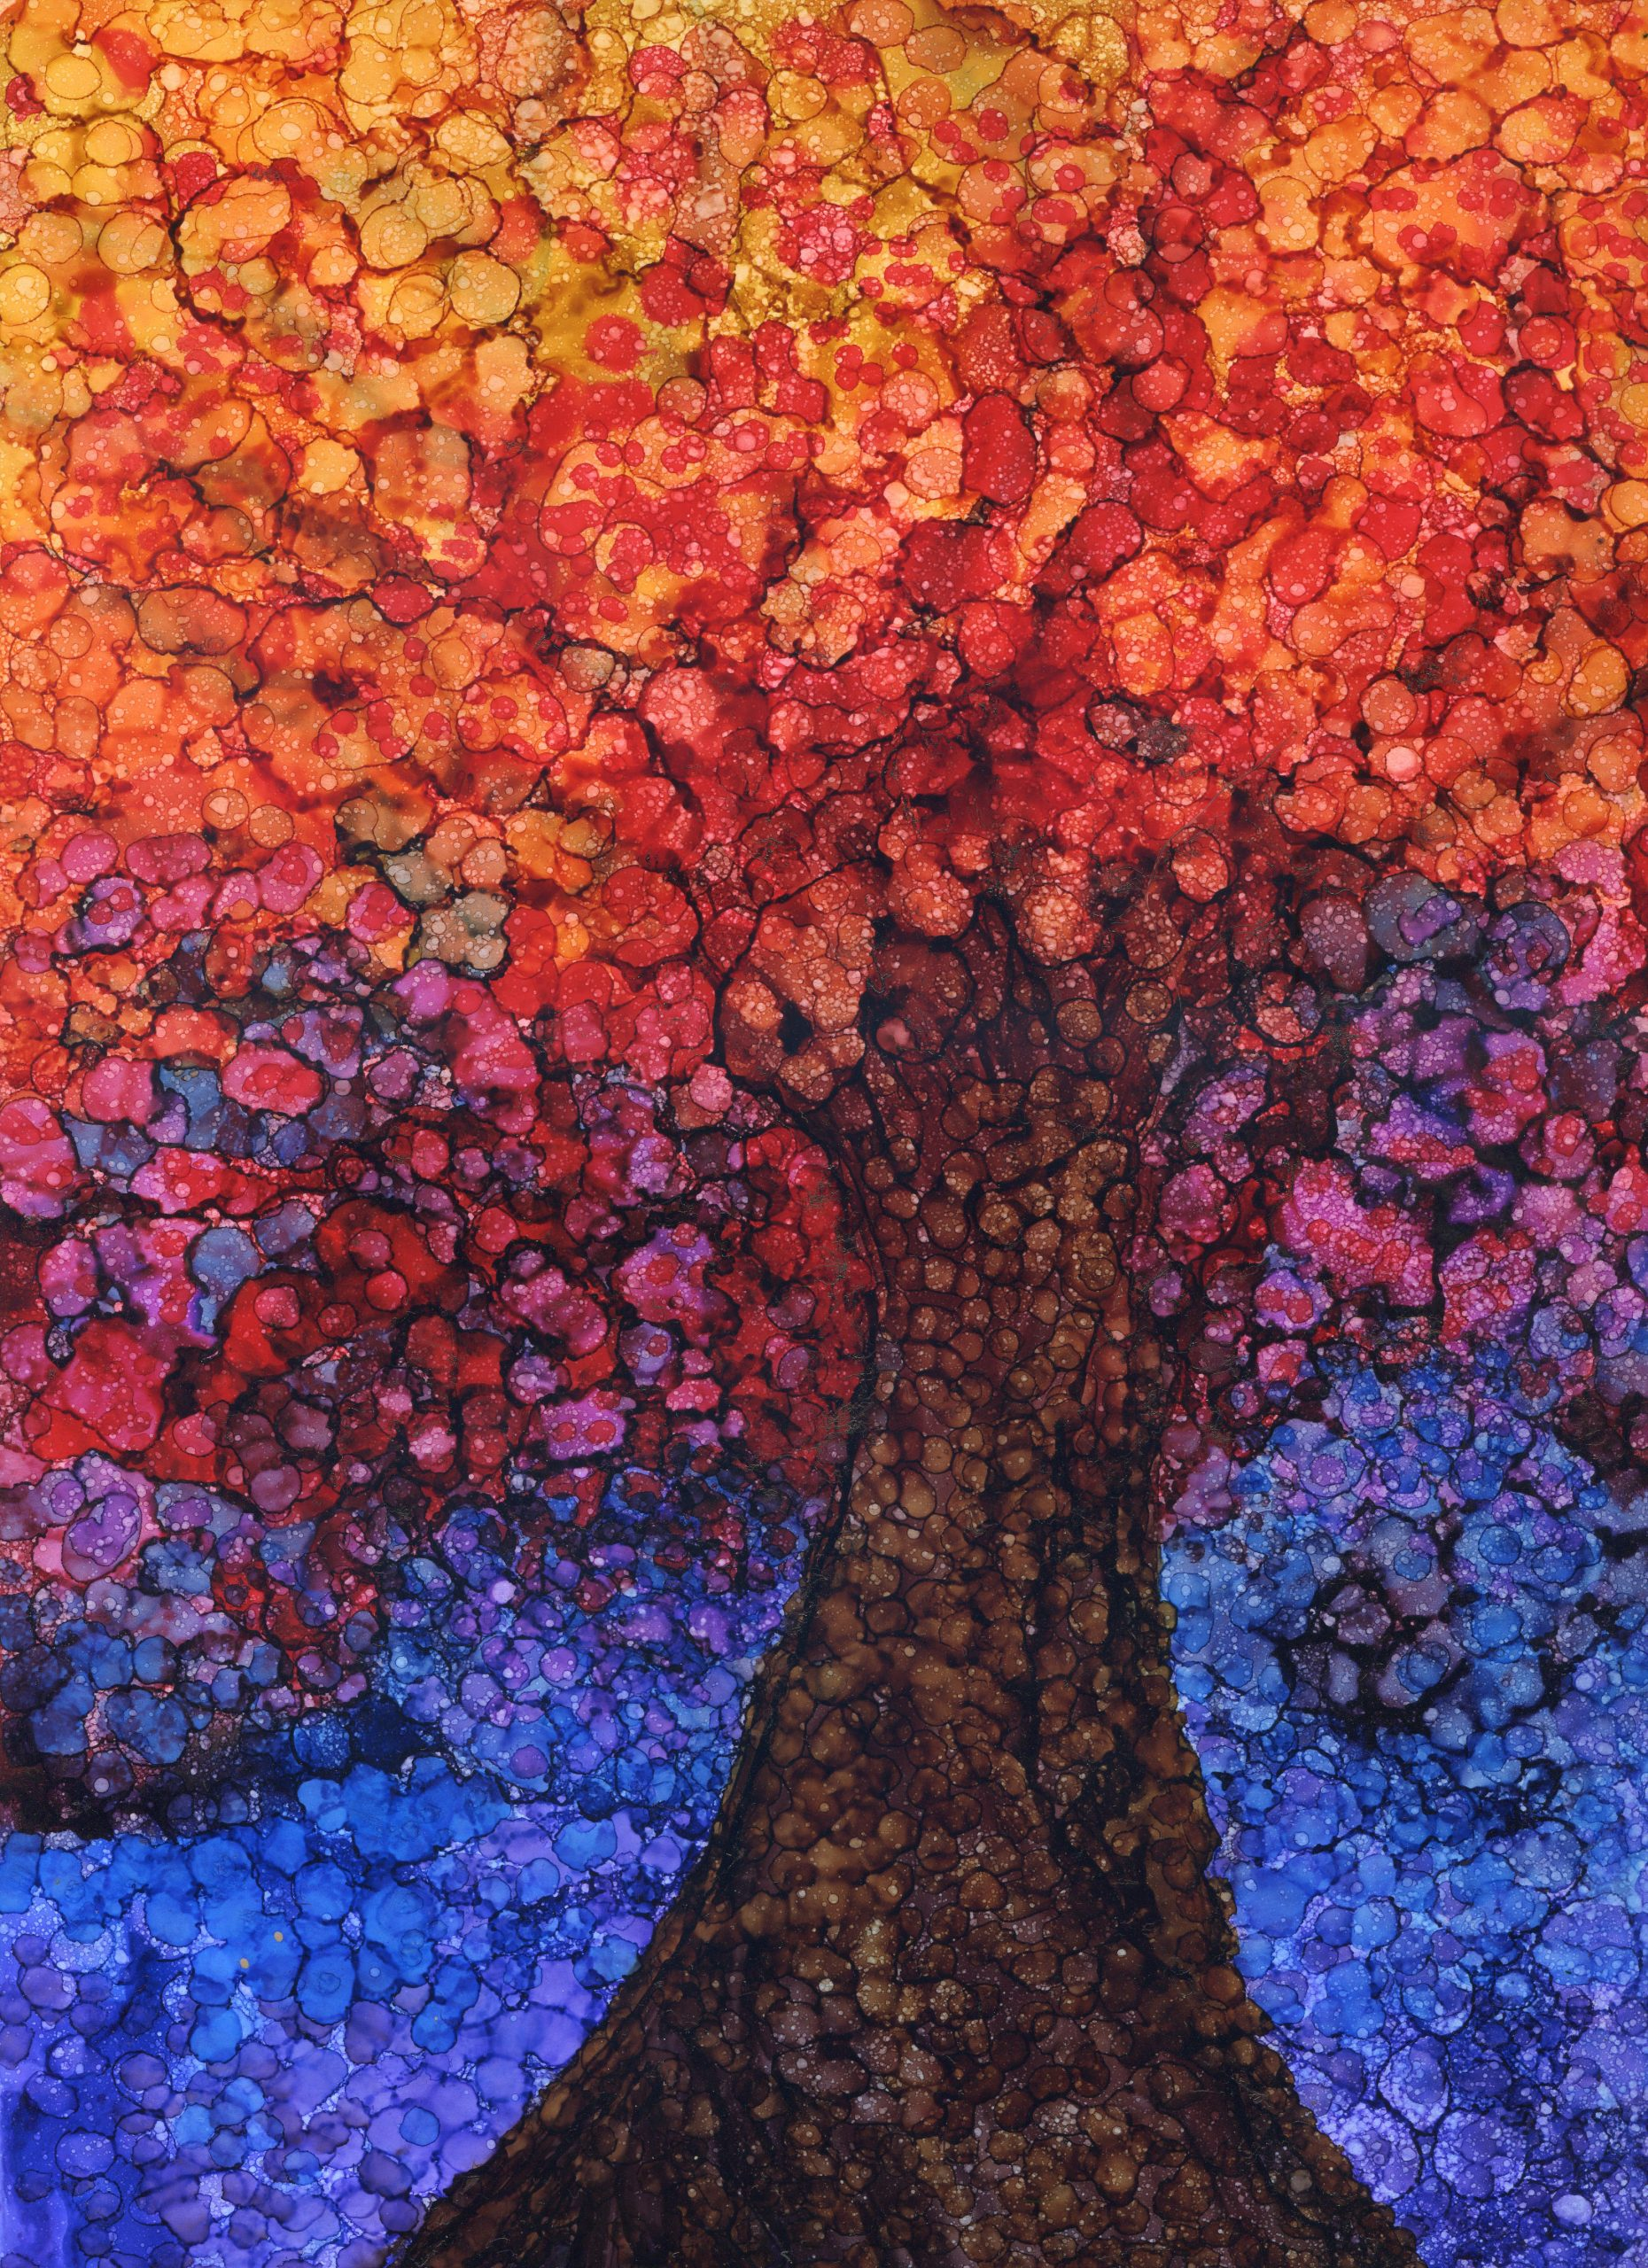 Tree Light - Alcohol Ink - 9 X 12 - $160